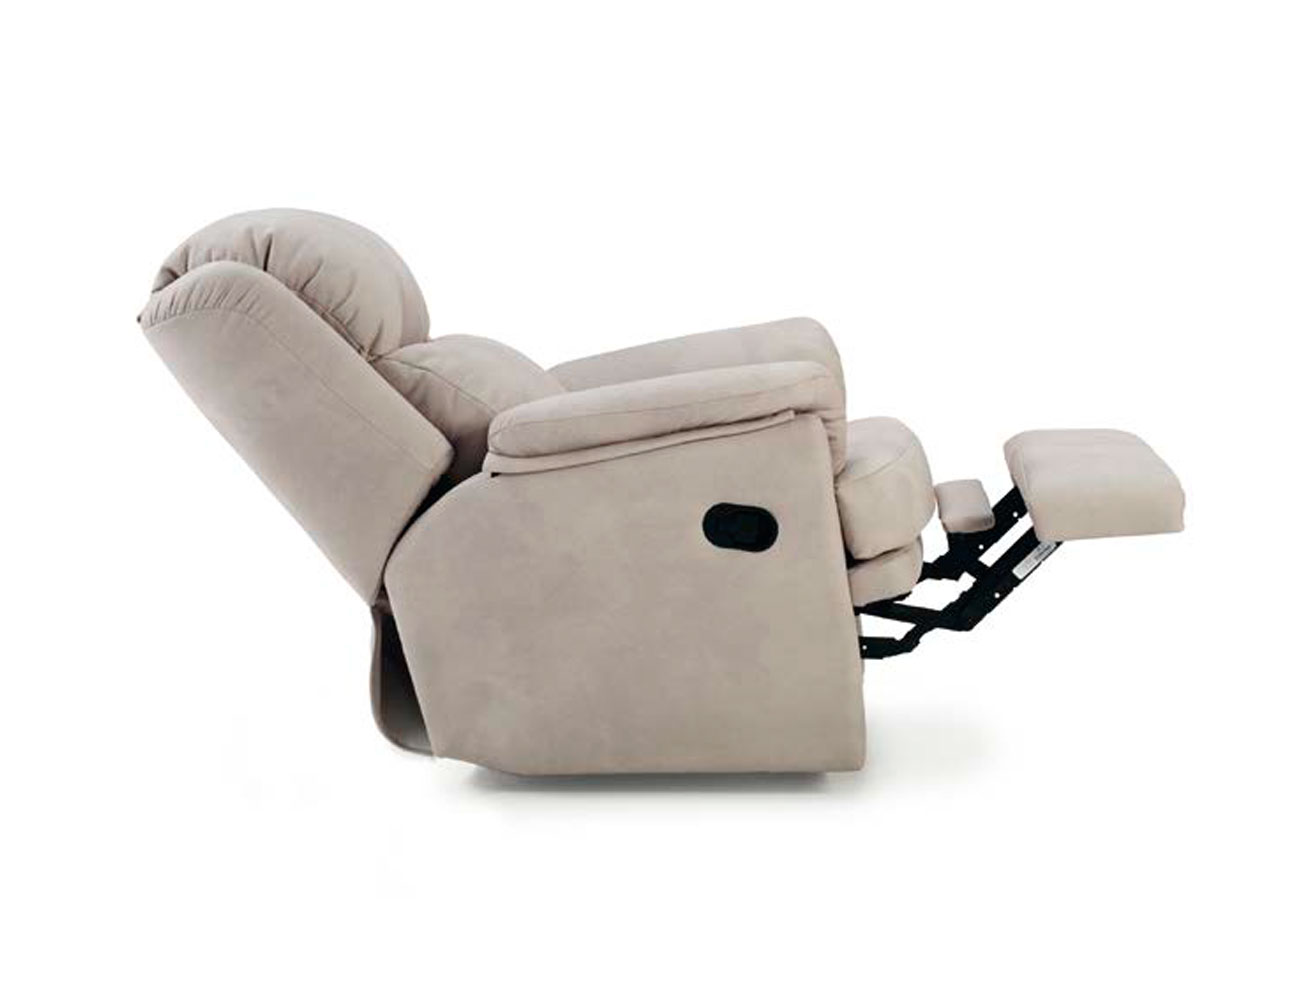 Sillon relax manual palanca esther 115